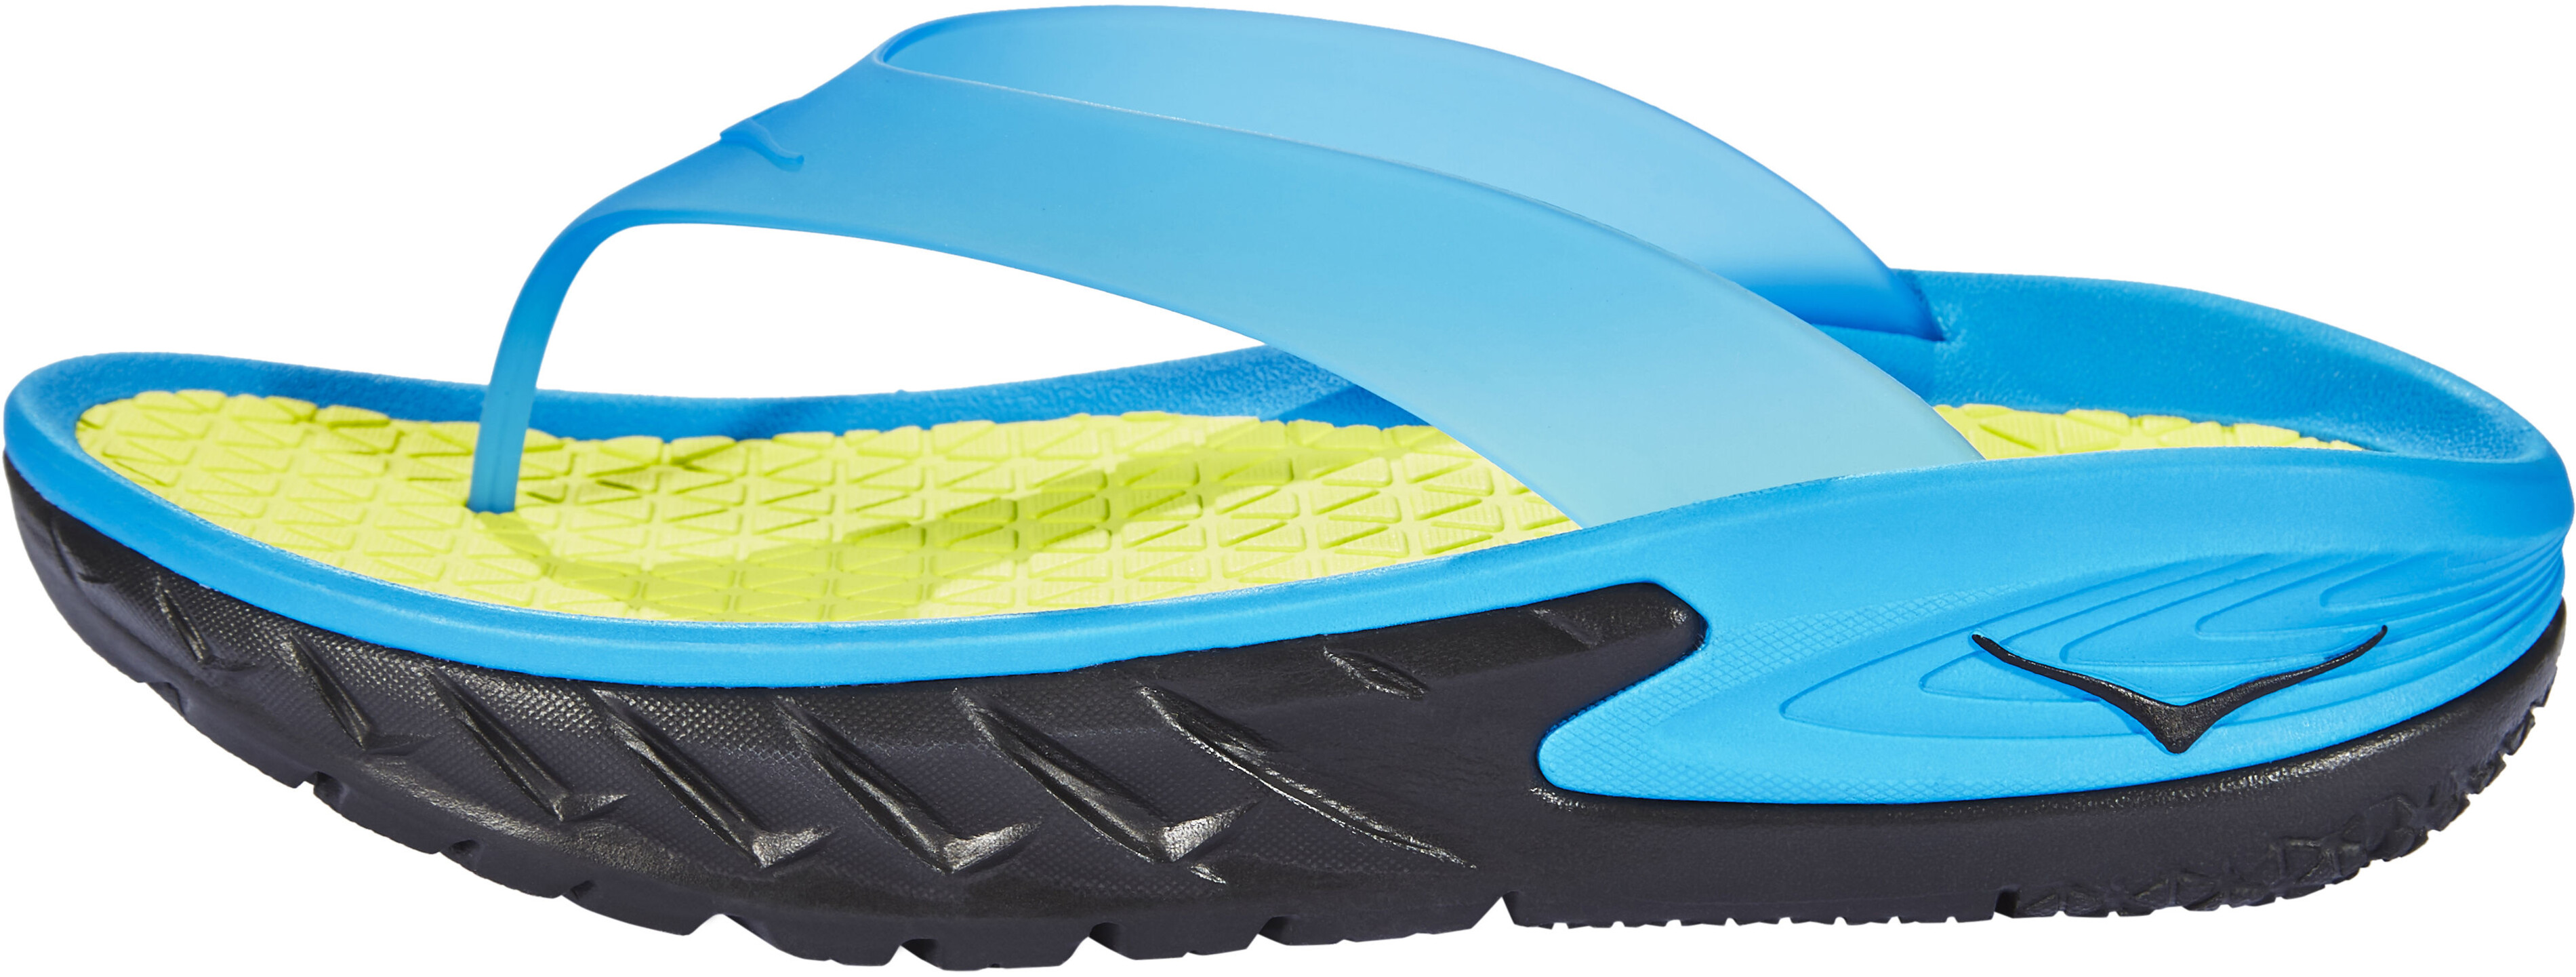 07d261d40a3c89 Hoka One One M s Ora Recovery Flip Sandals black process blue ...